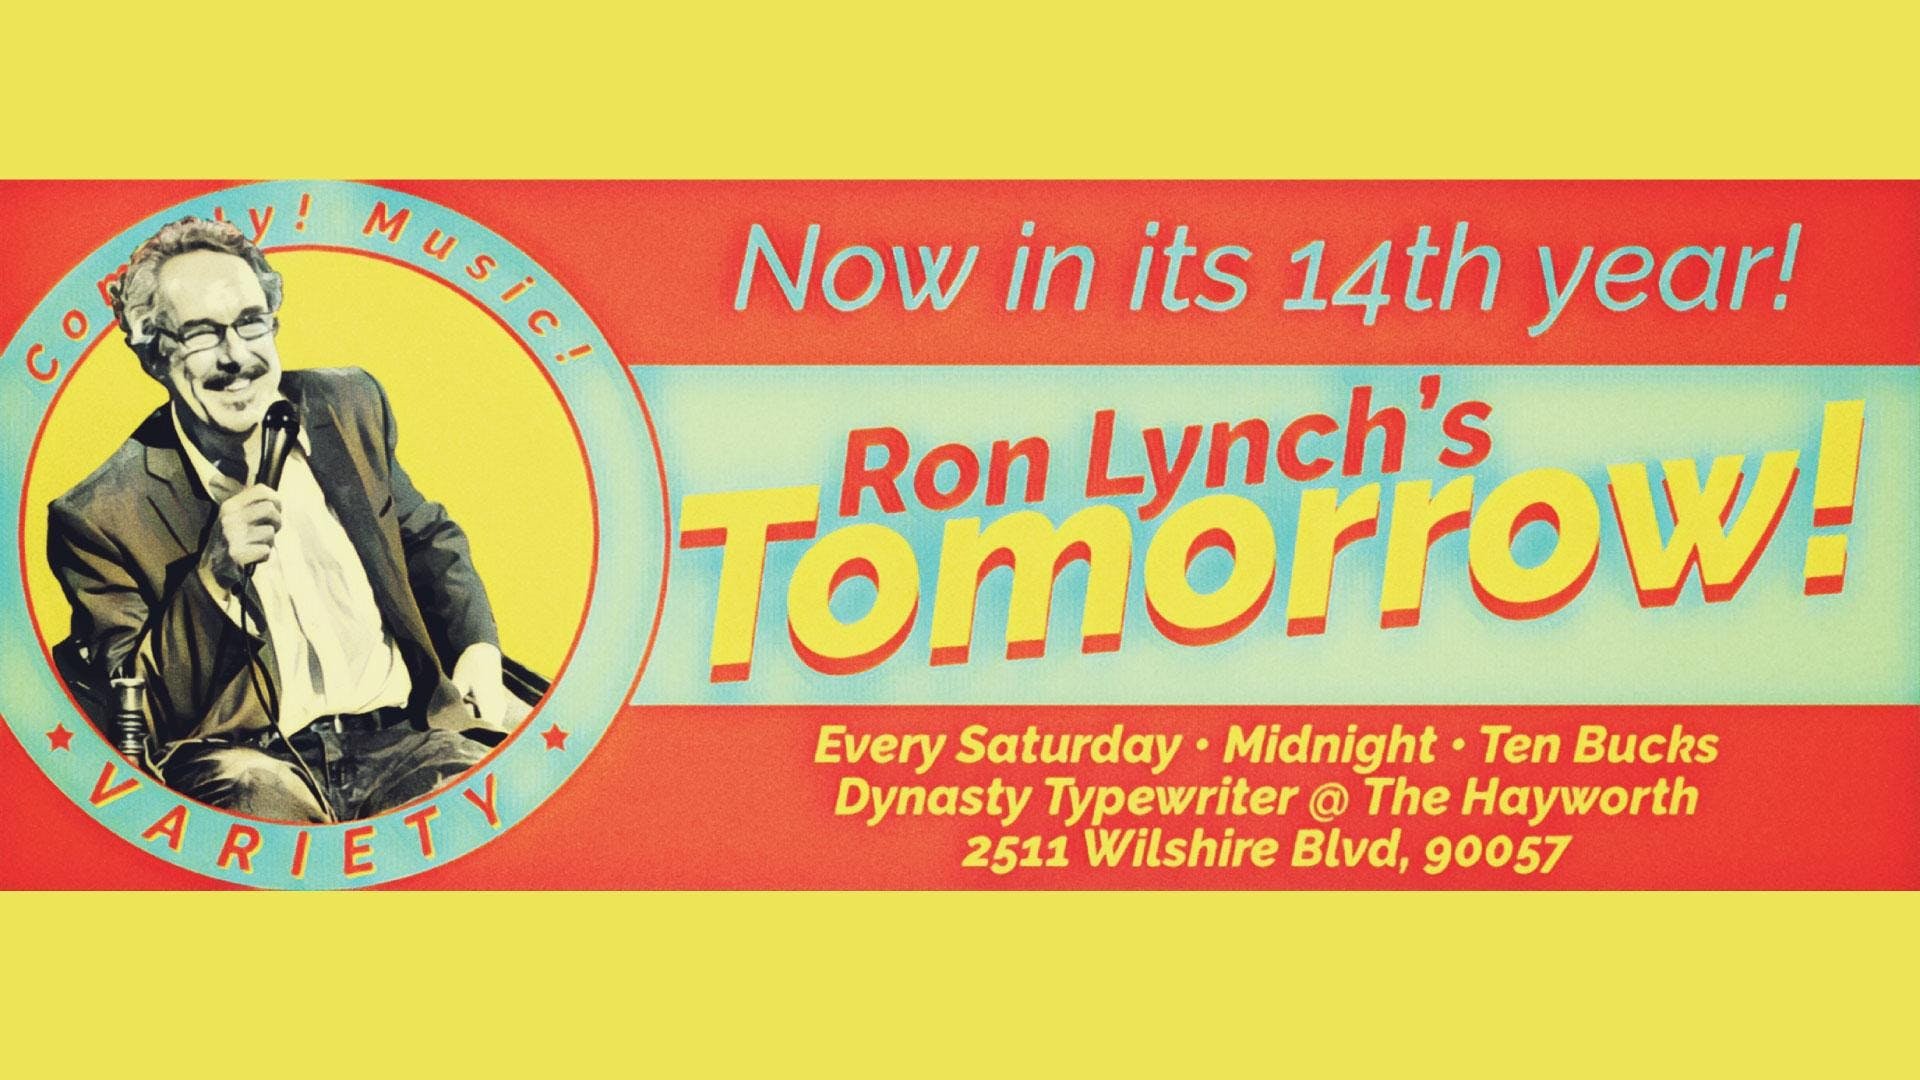 Tomorrow Show with Ron Lynch